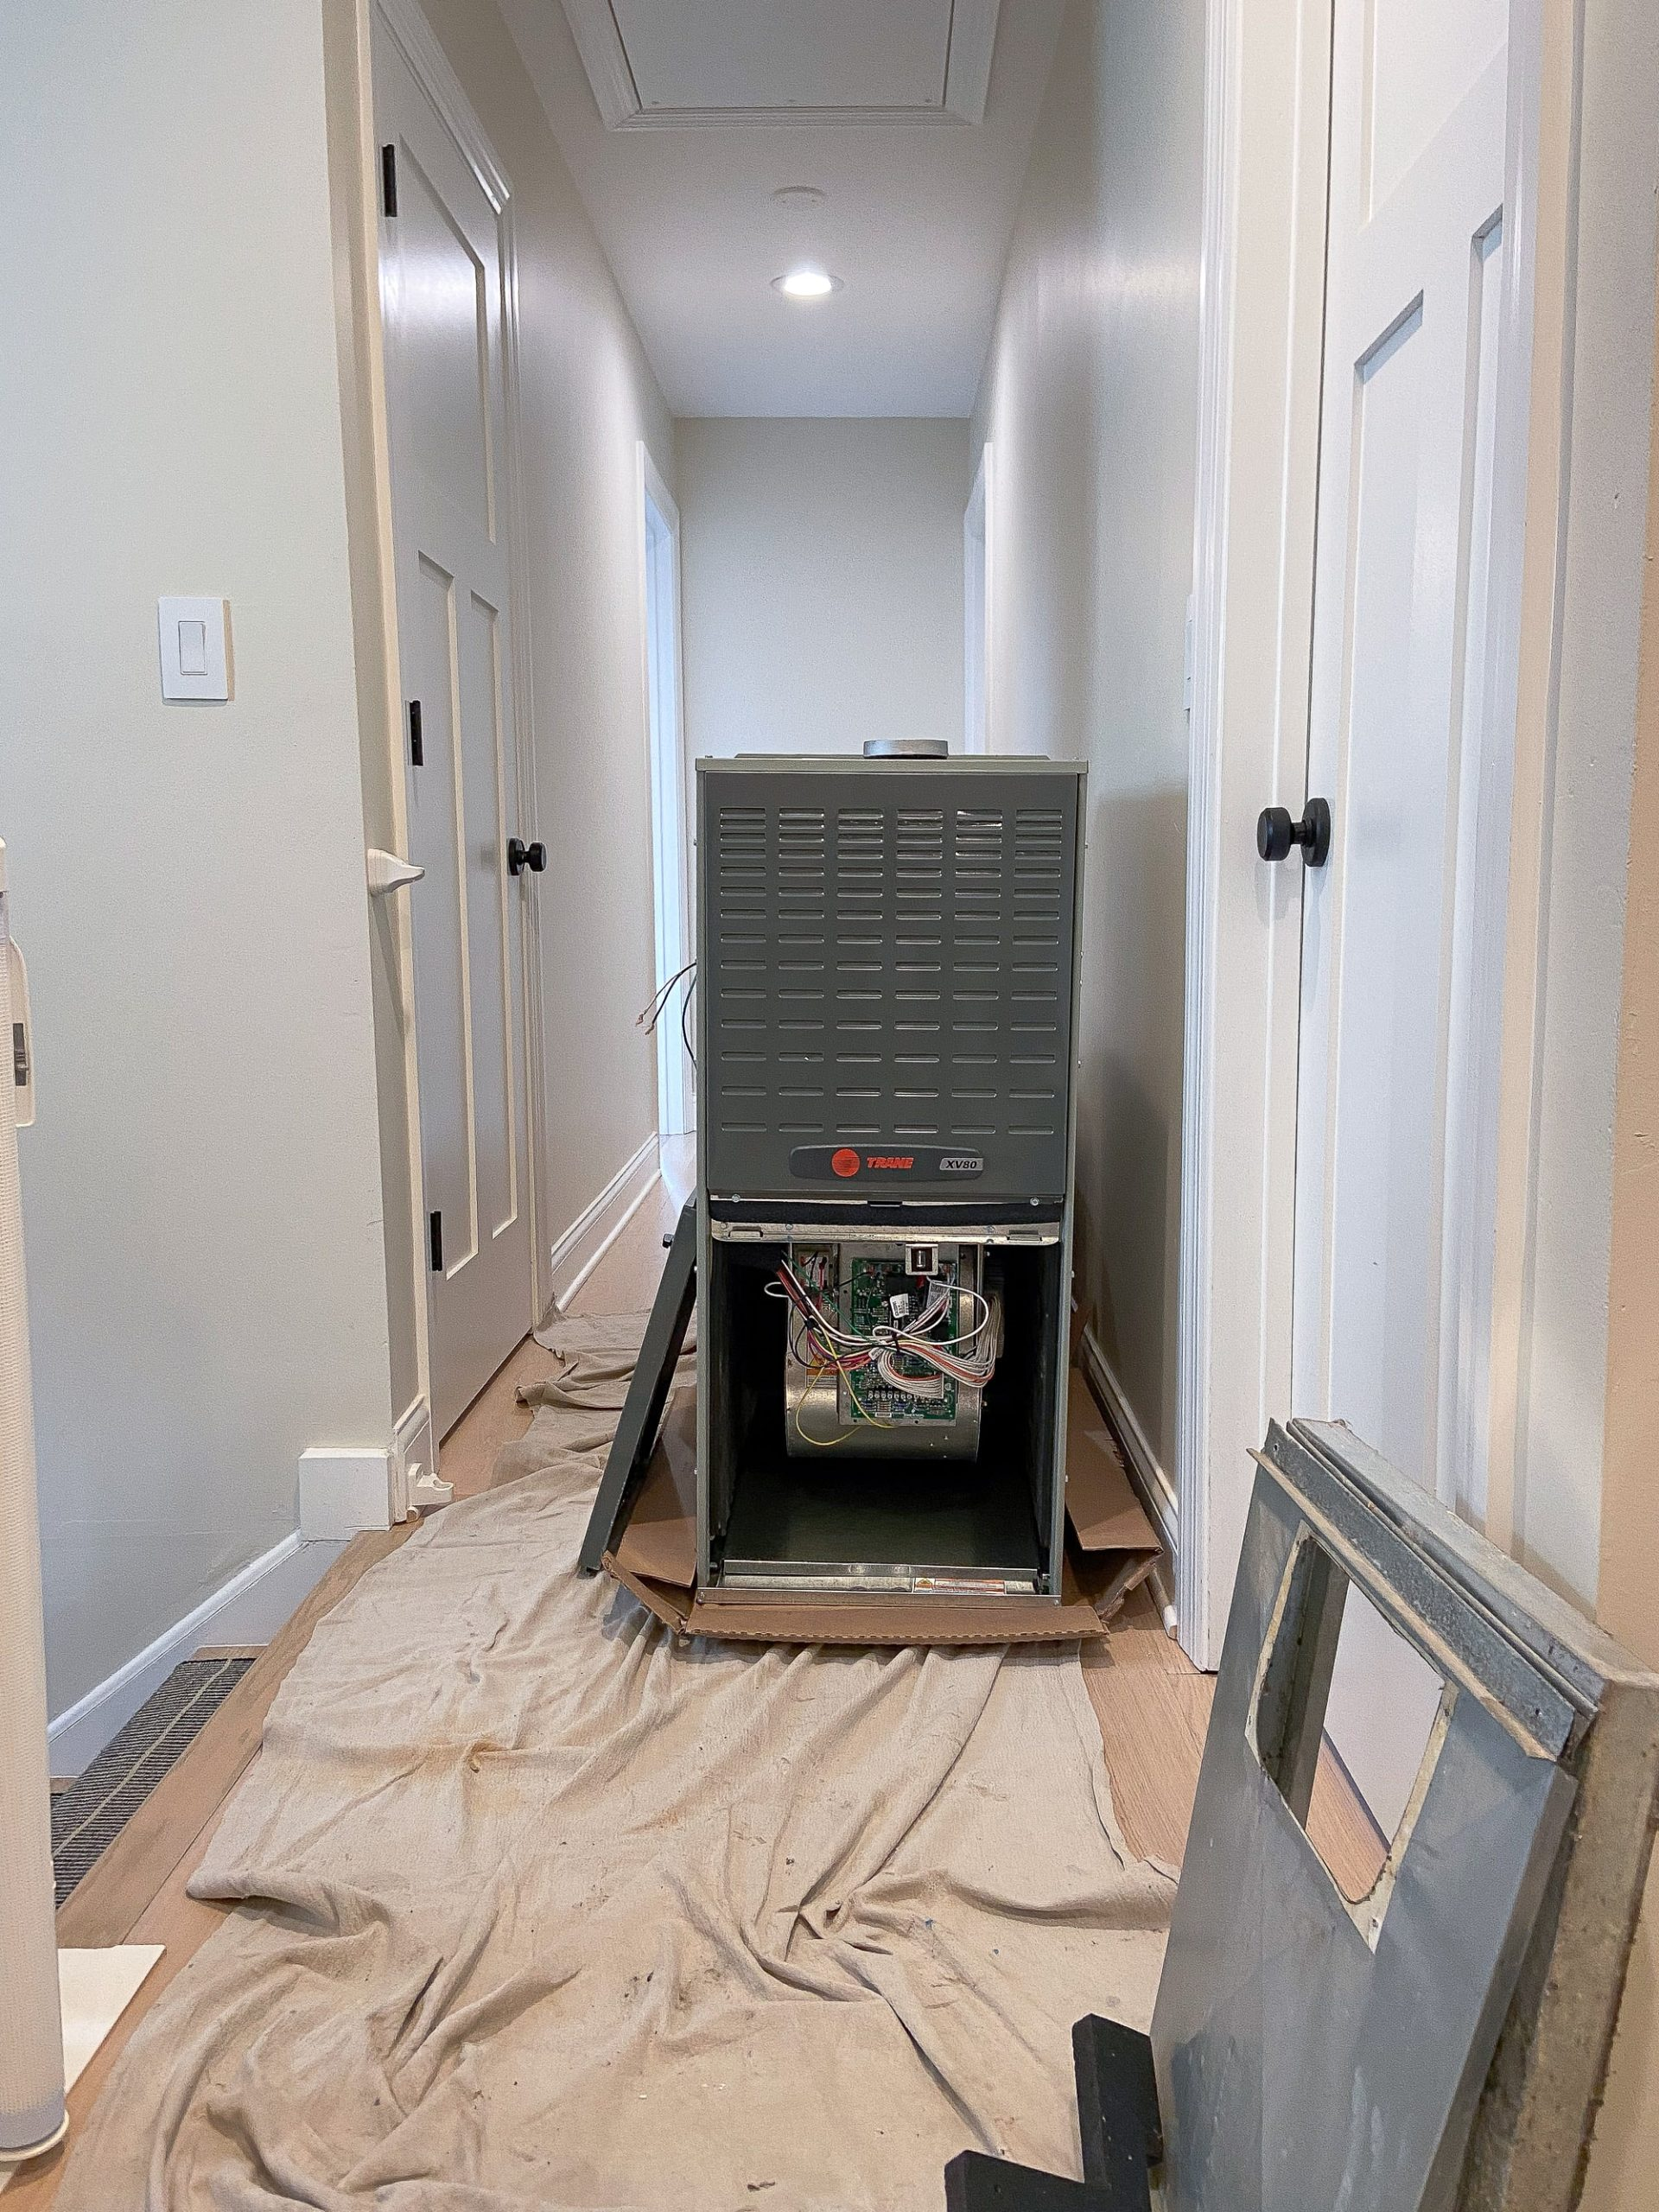 The installation process for our new hvac system